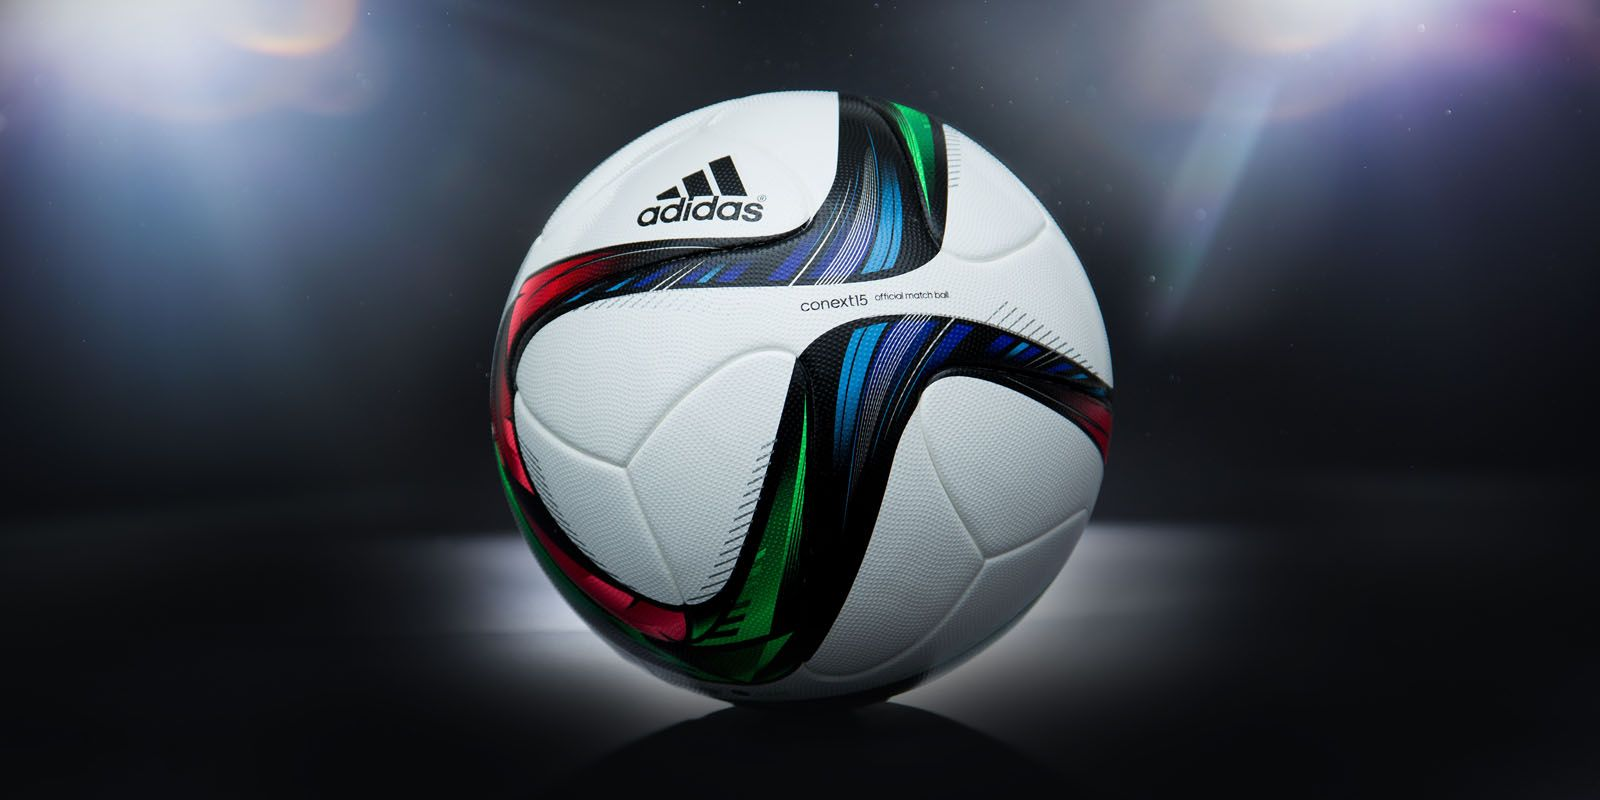 a3094d53cf586 New Adidas Conext 15 2015 Ball Released - Footy Headlines ...